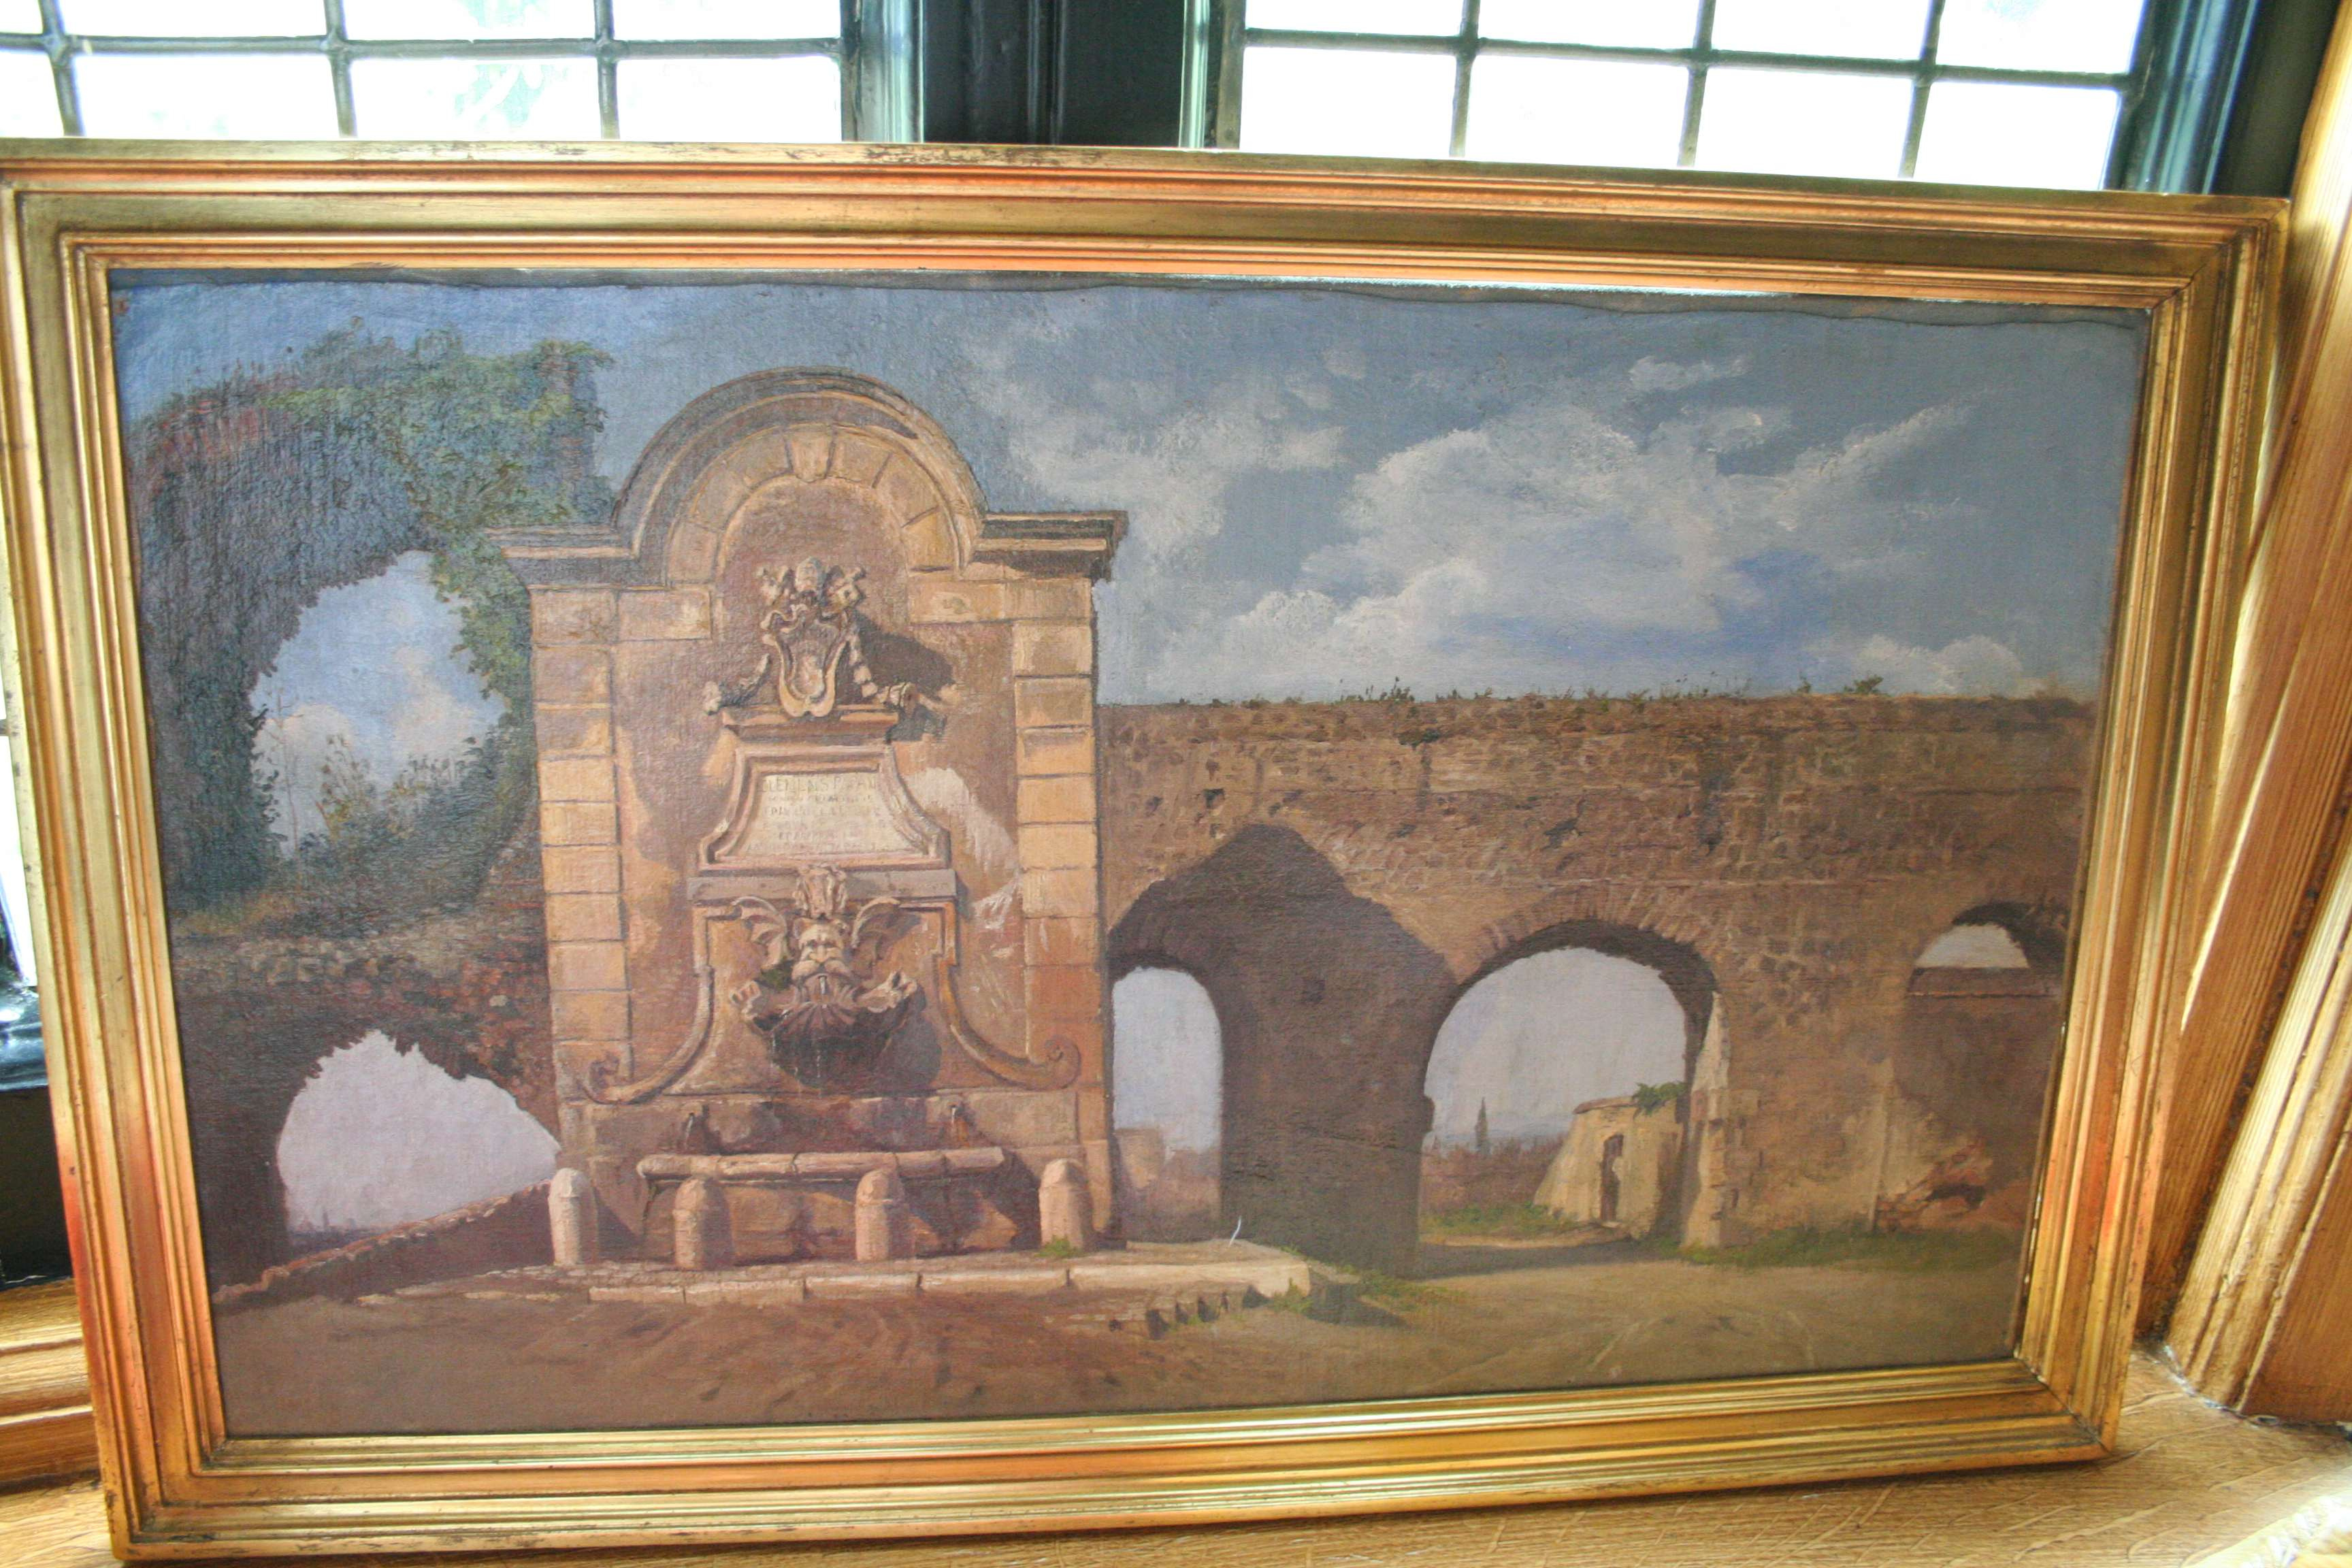 https://0201.nccdn.net/1_2/000/000/0a0/ba9/Thomas-Philippsen---View-of-the-Fountain-a-Porta-Furba-Rome-3456x2304.jpg